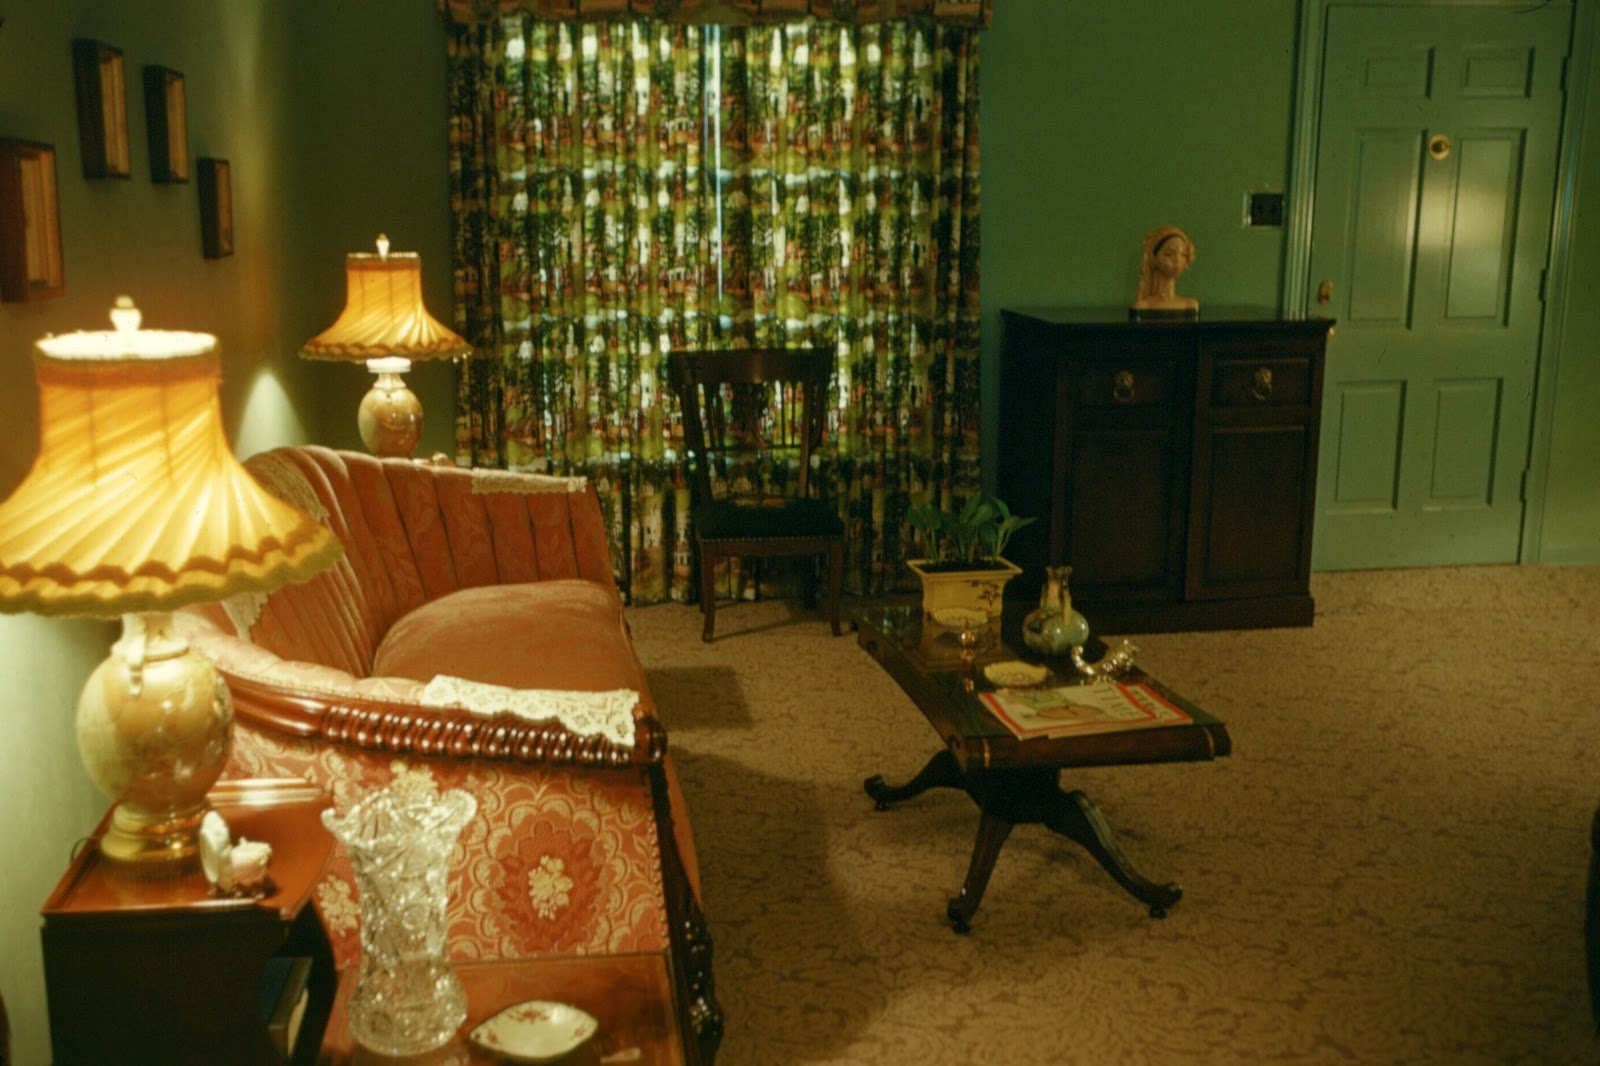 1940s Bedroom Furniture James H Law Photographer Circa 1940s Home Interiors By